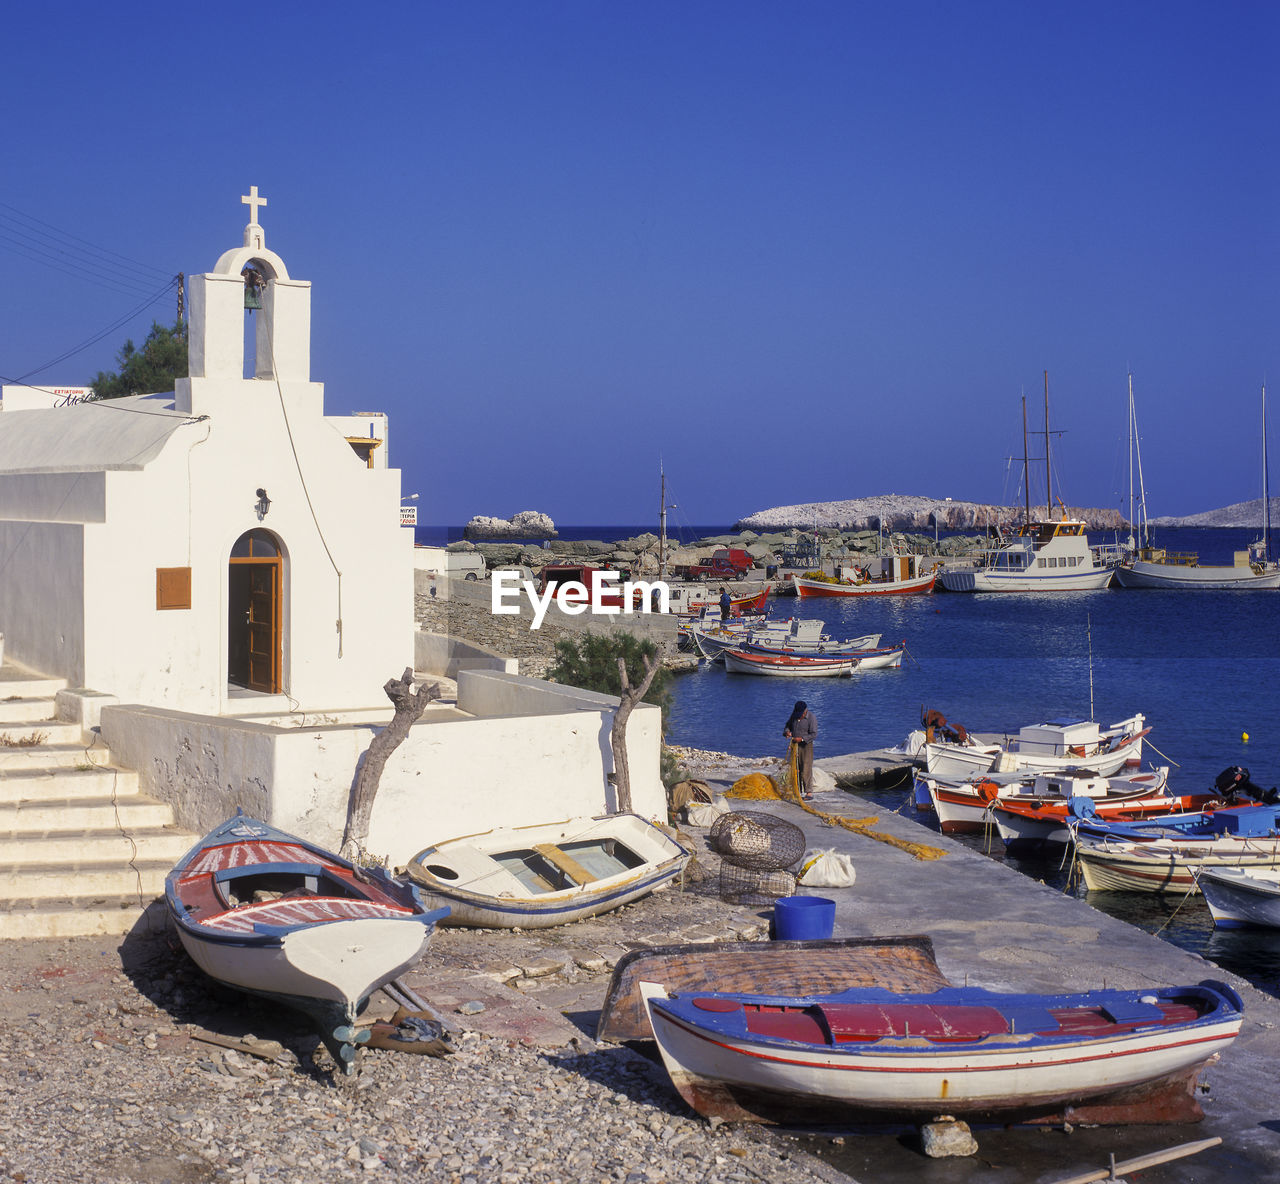 Church By Boats Moored At Harbor During Sunny Day